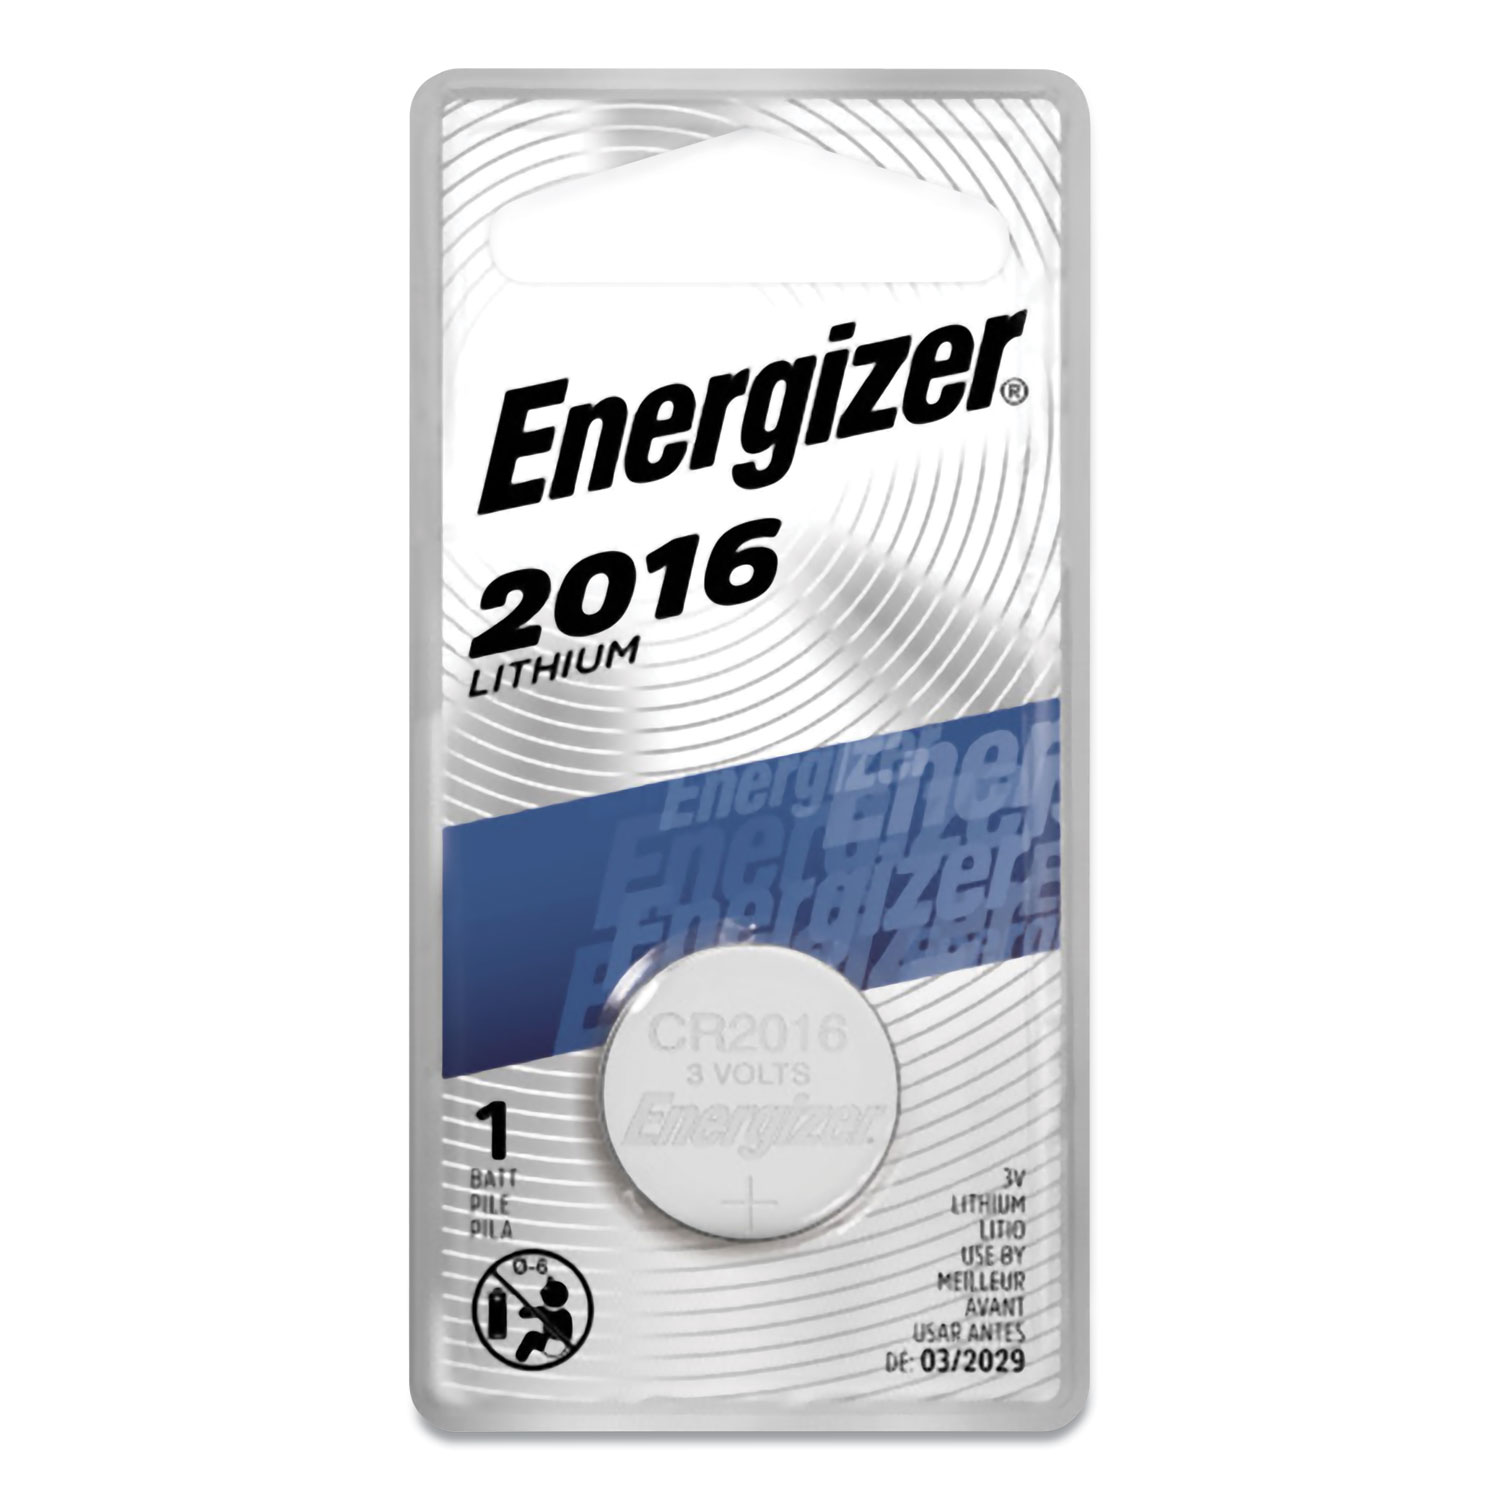 2016 Lithium Coin Battery, 3V